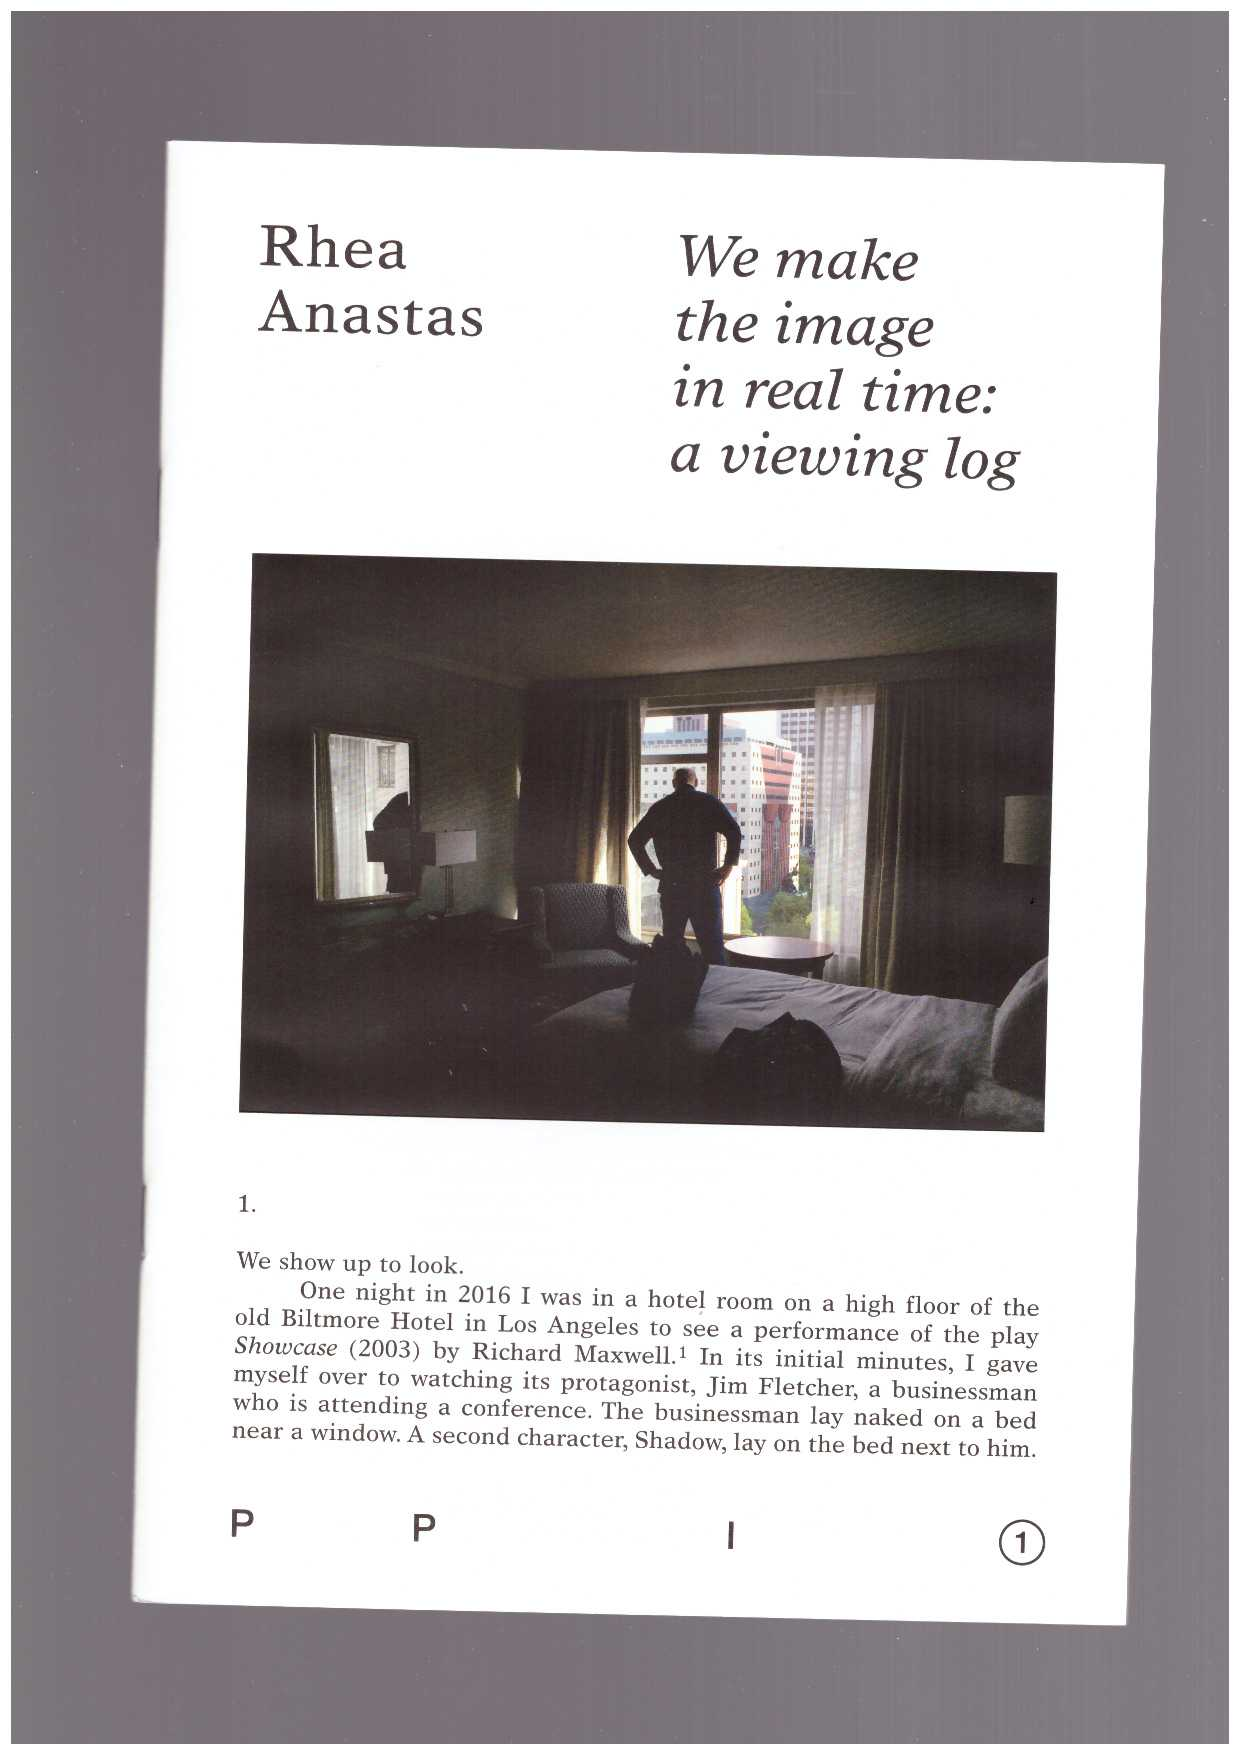 ANASTAS, Rhea - Pound Per Image #1 – We make the image in real time: a viewing log